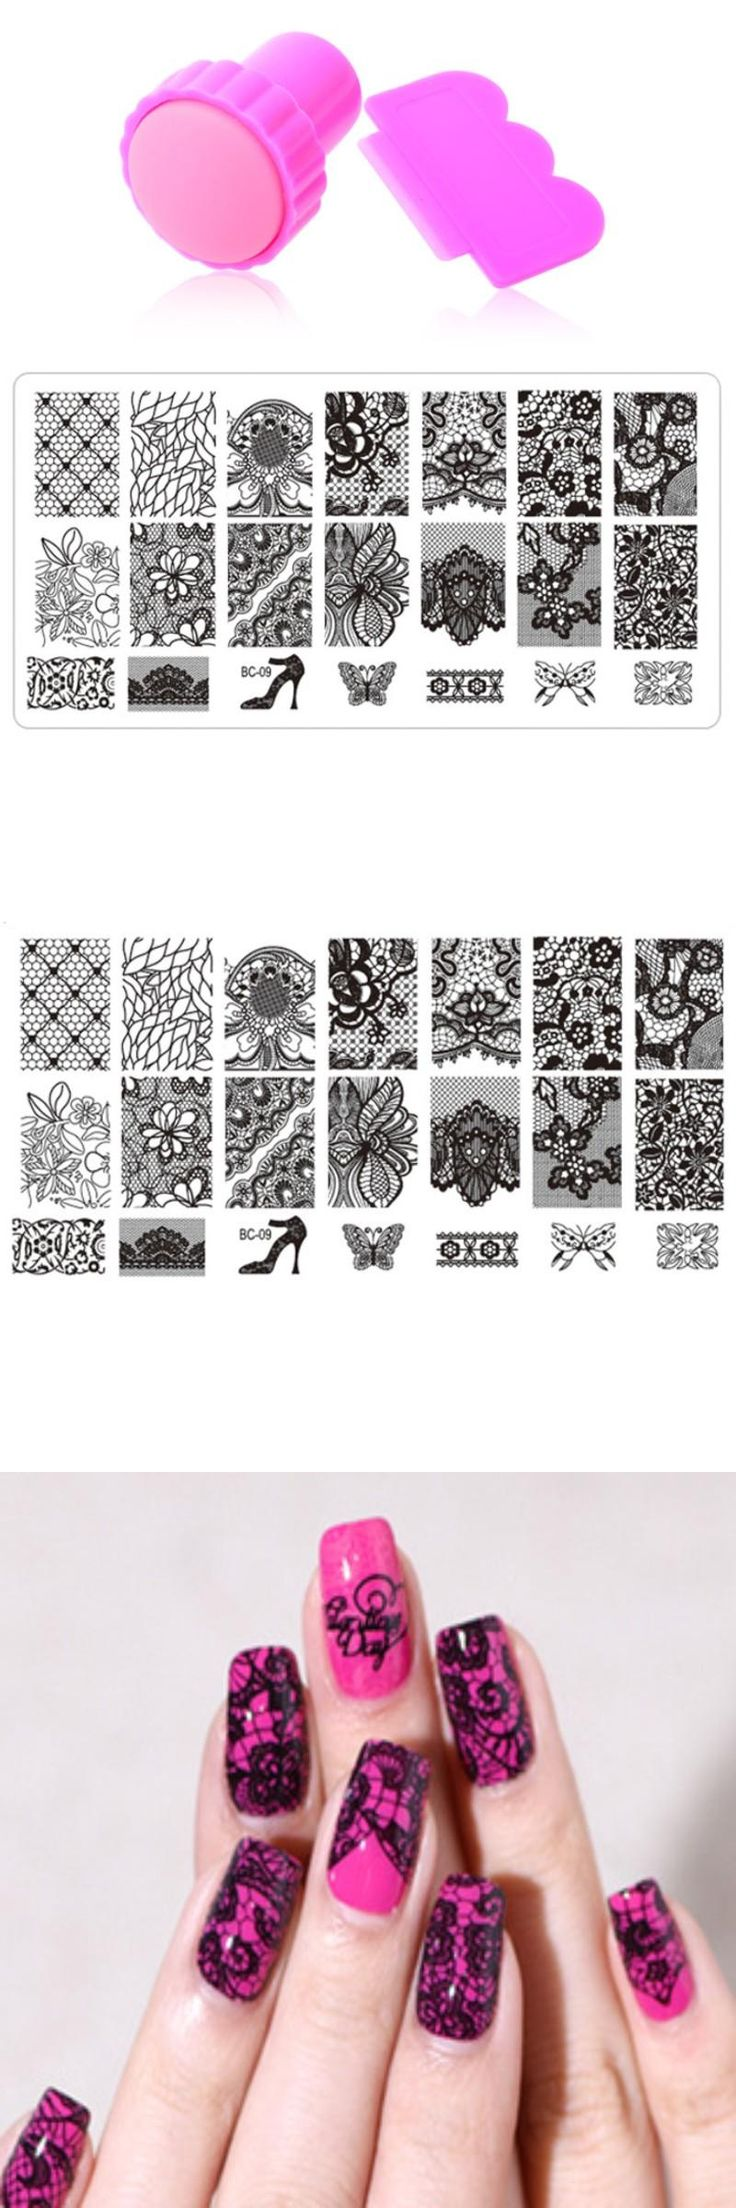 [Visit to Buy] Nail Art Stamping,10Designs 1pcs Stainless Steel Image Plates and Stamper Scraper Set,Konad Nail Stamp Template,Nail Tools #Advertisement